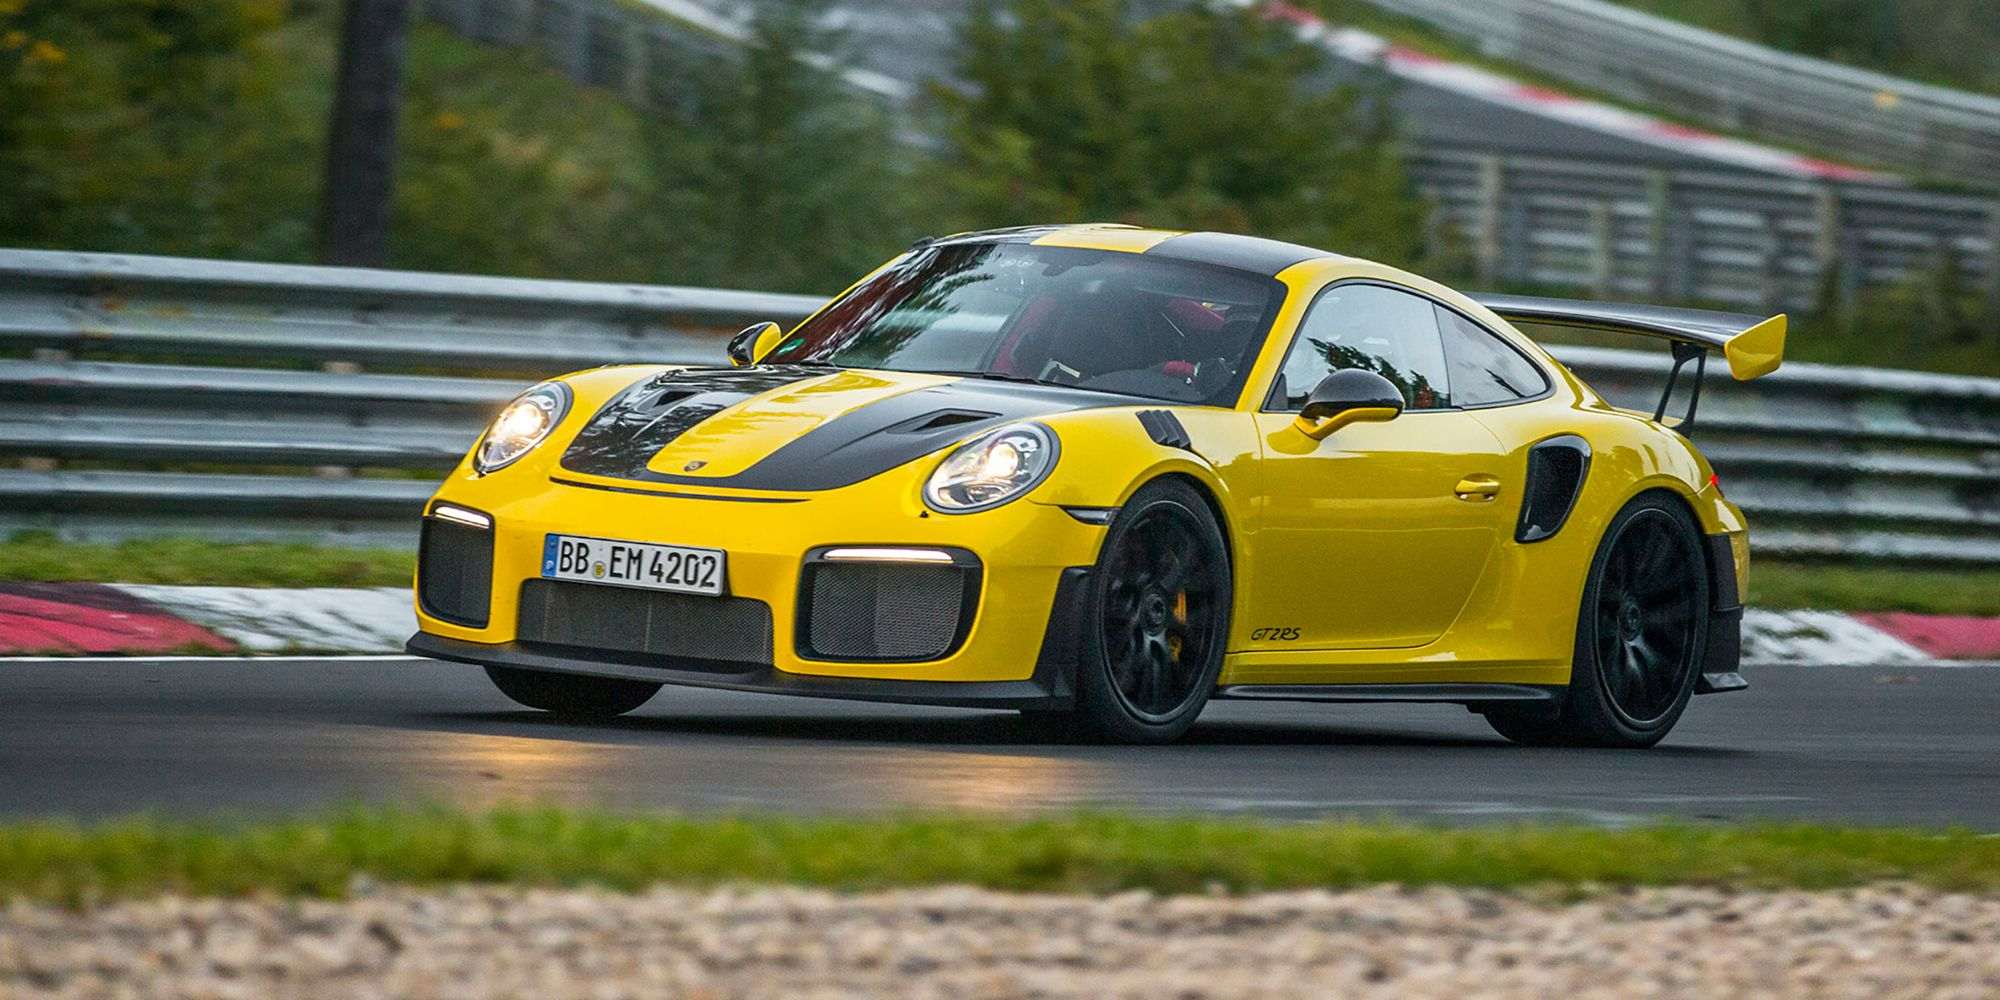 high-911-gt2-rs-world-record-nu-rburgring-2017-porsche-ag-1-1506609640 Interesting Porsche 911 Gt2 and Gt3 Cars Trend